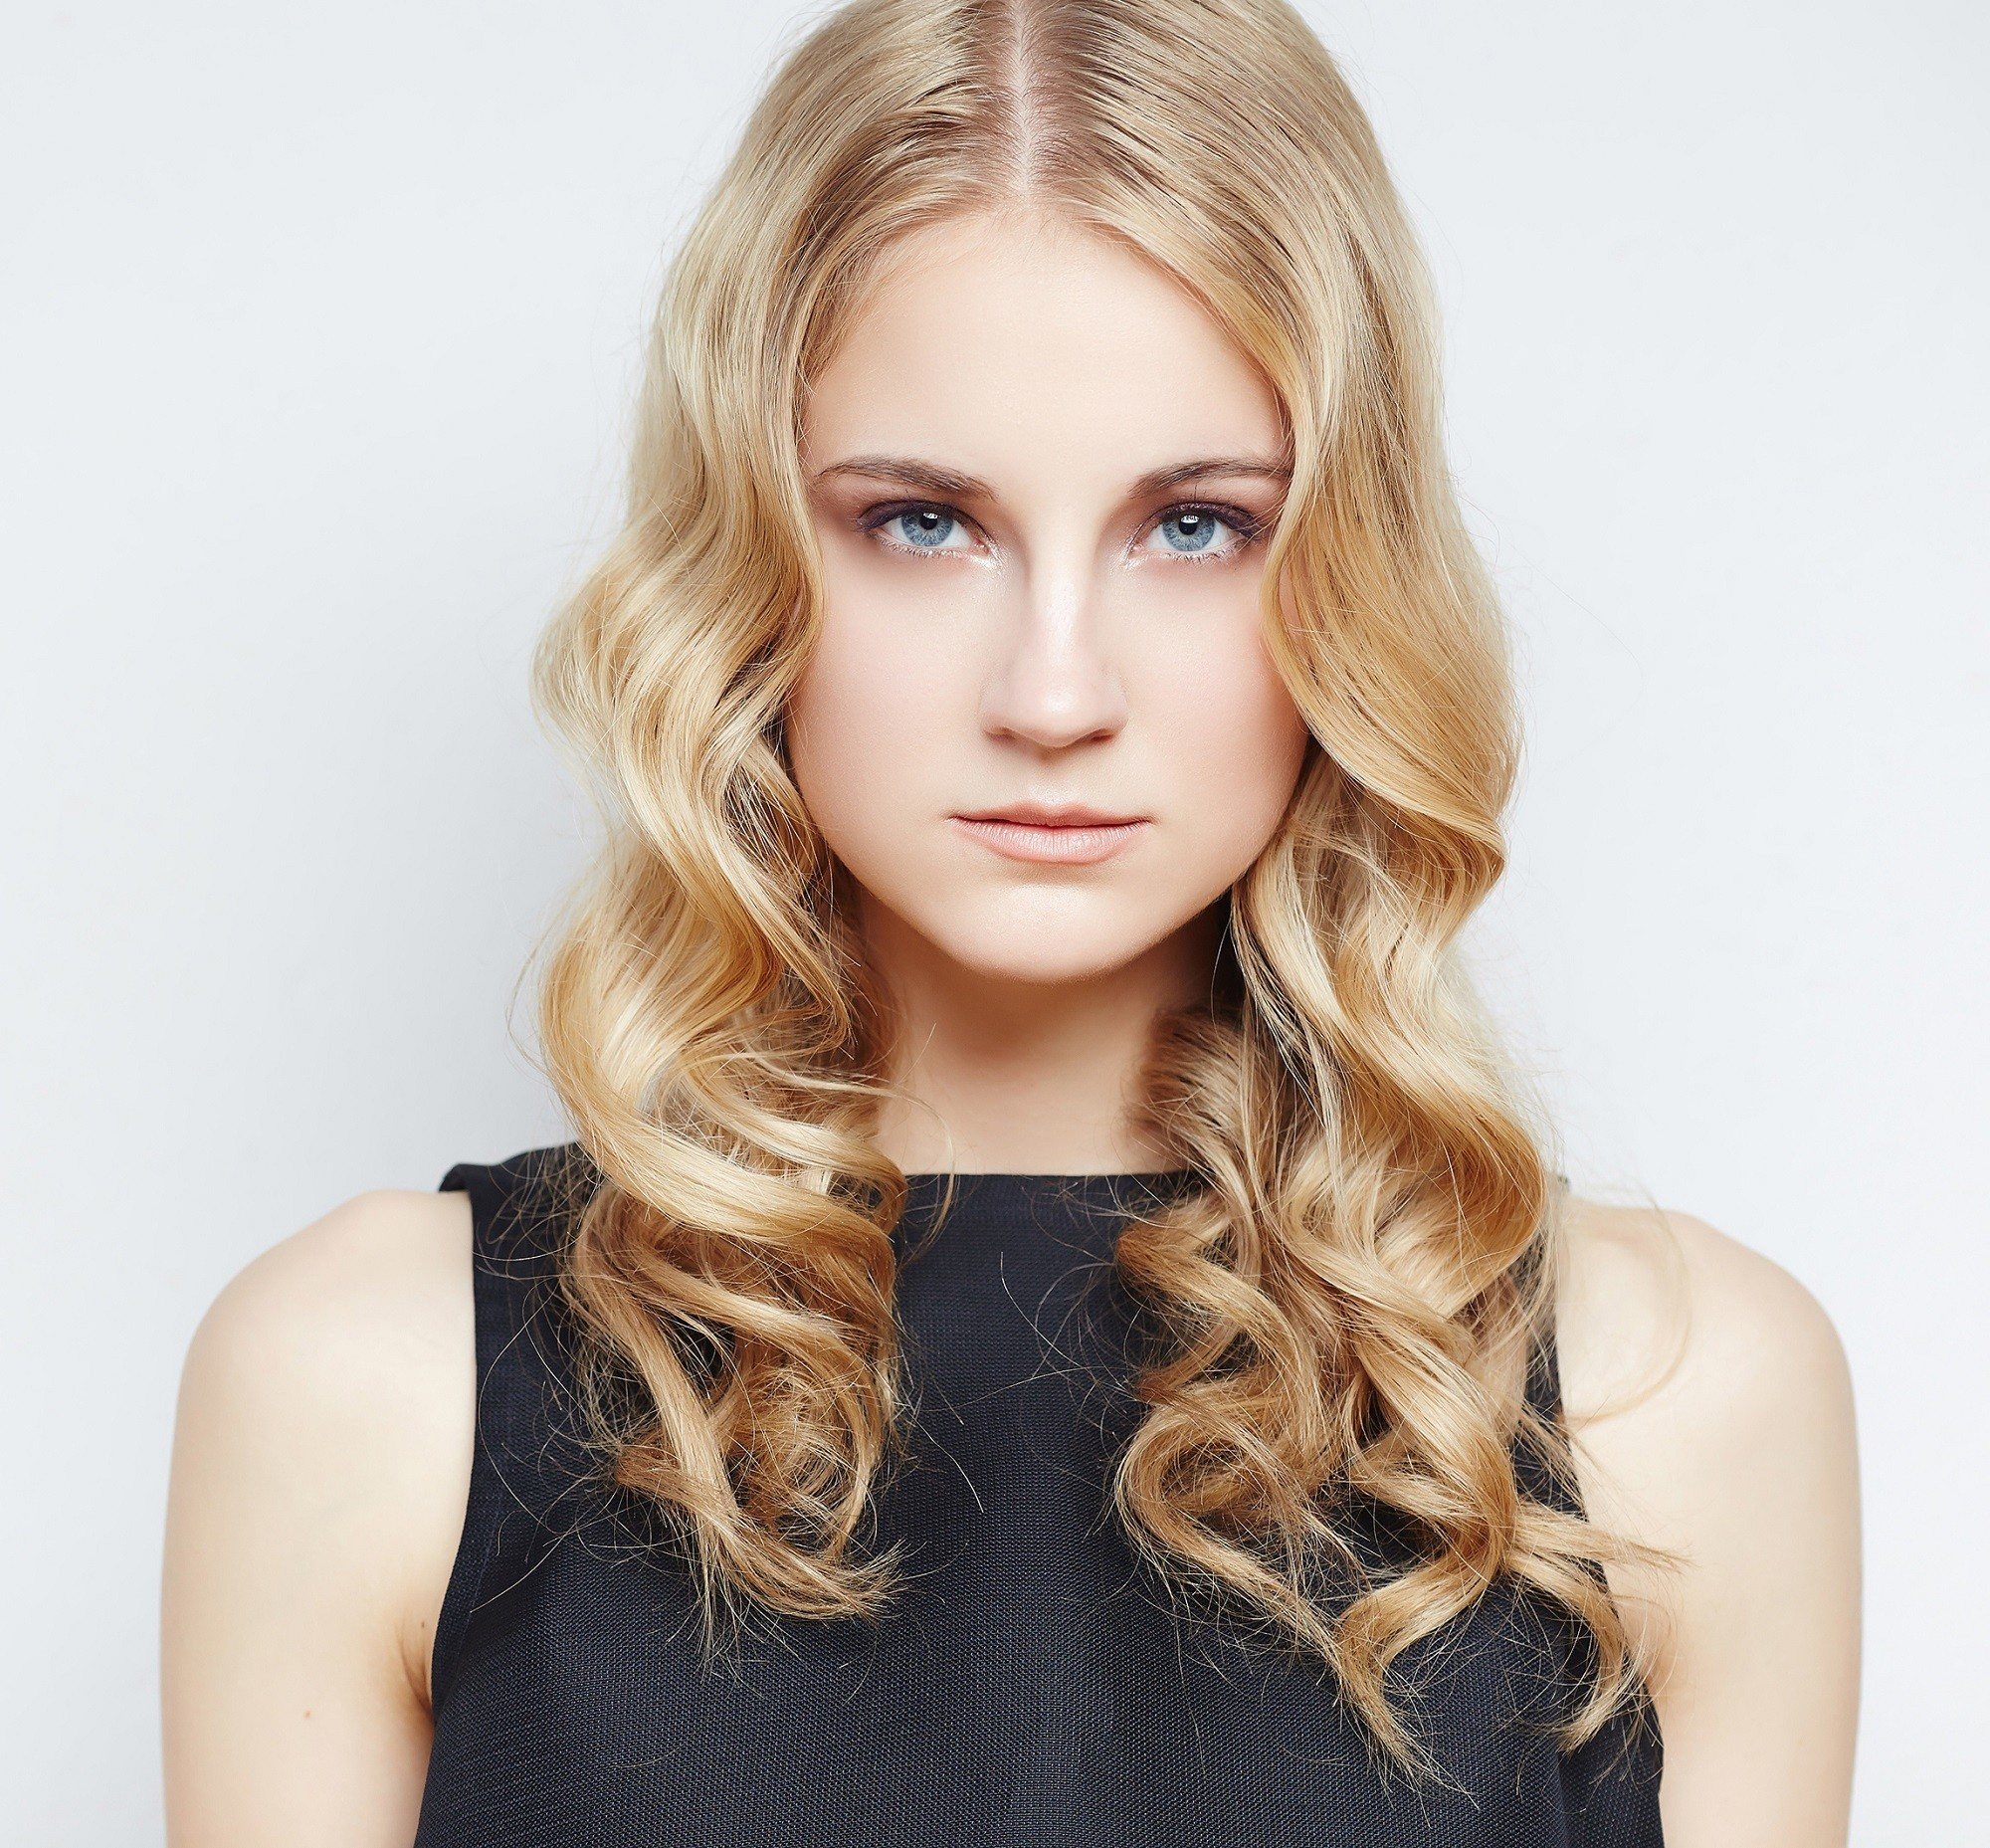 Curly blonde hair: Closeup shot of Caucasian woman with long curly strawberry blonde hair wearing black sleeveless top against a white background